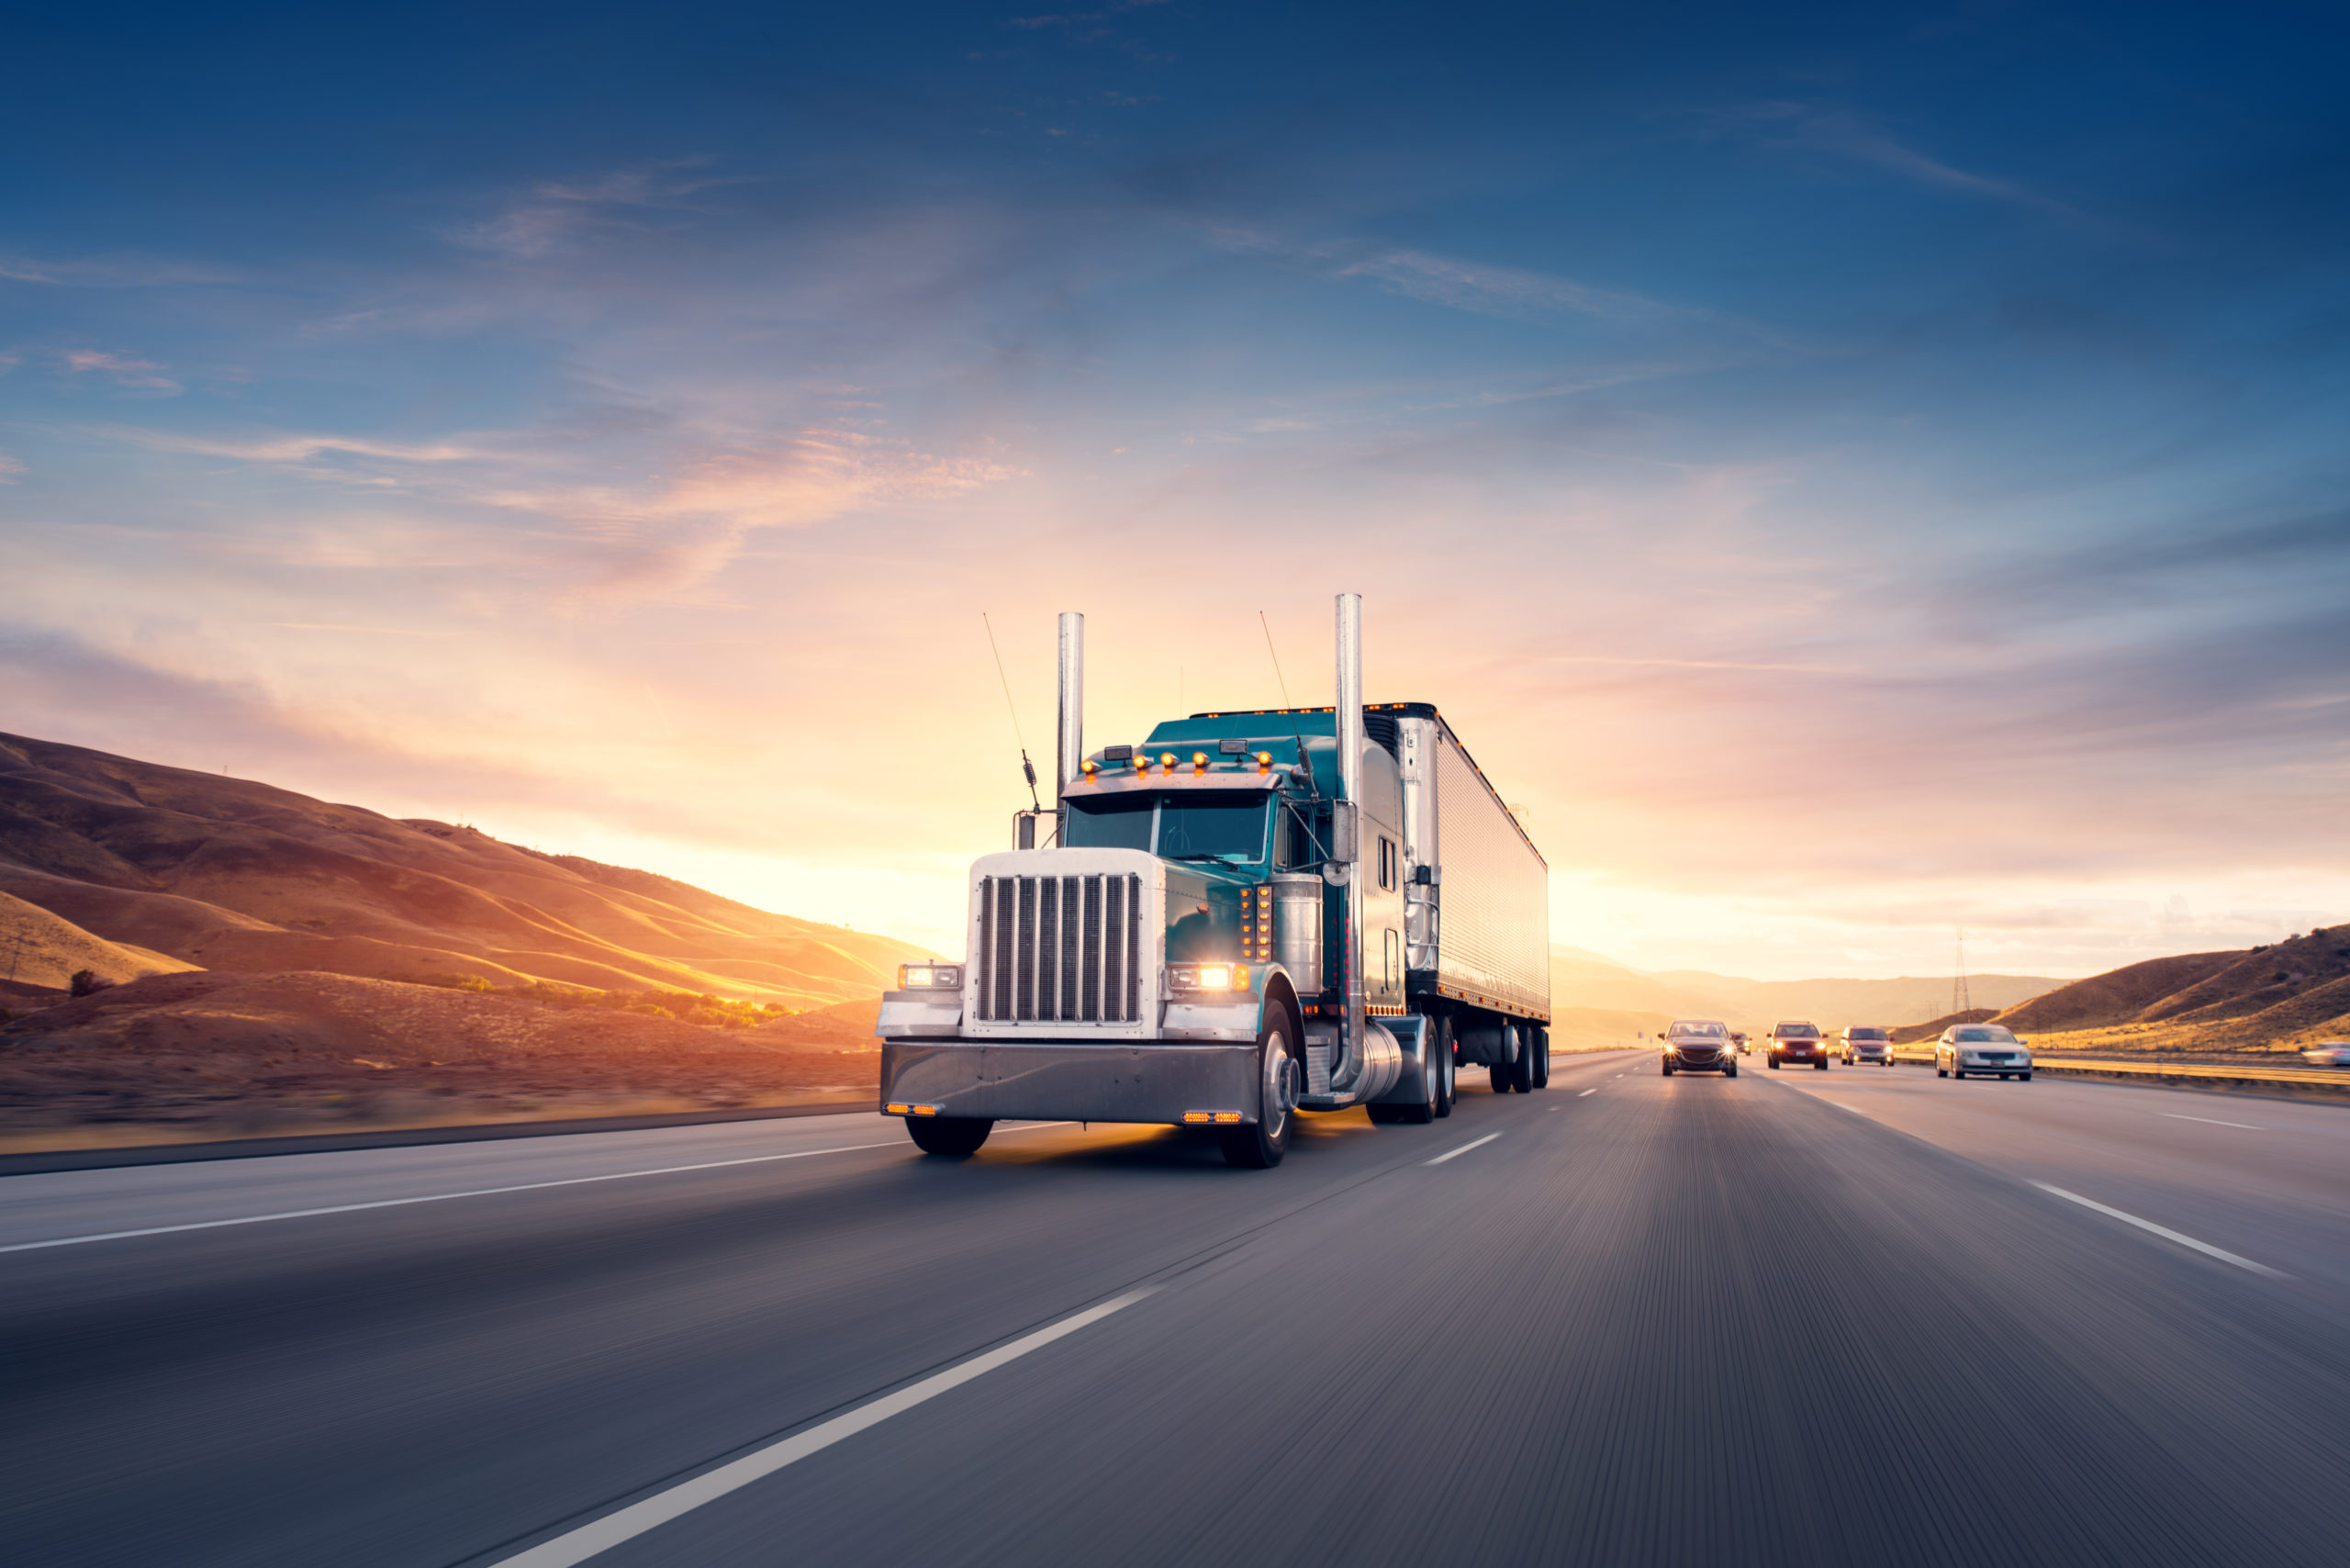 Blog - American style truck on freeway pulling load. Transportation the